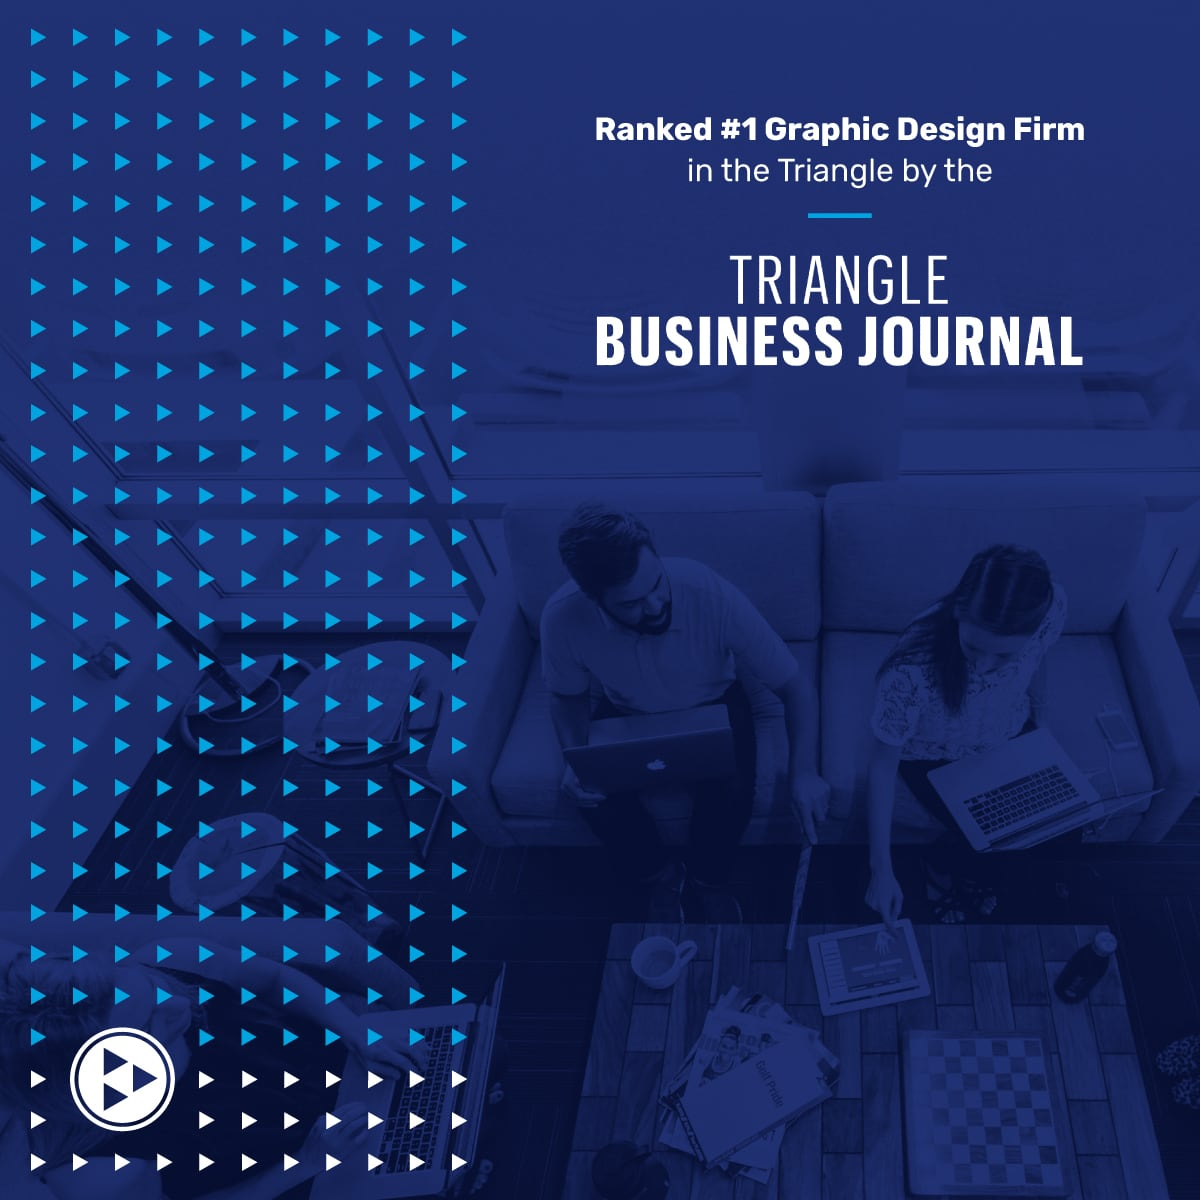 TriMark Digital Ranked #1 Among Triangle Graphic Design Firms